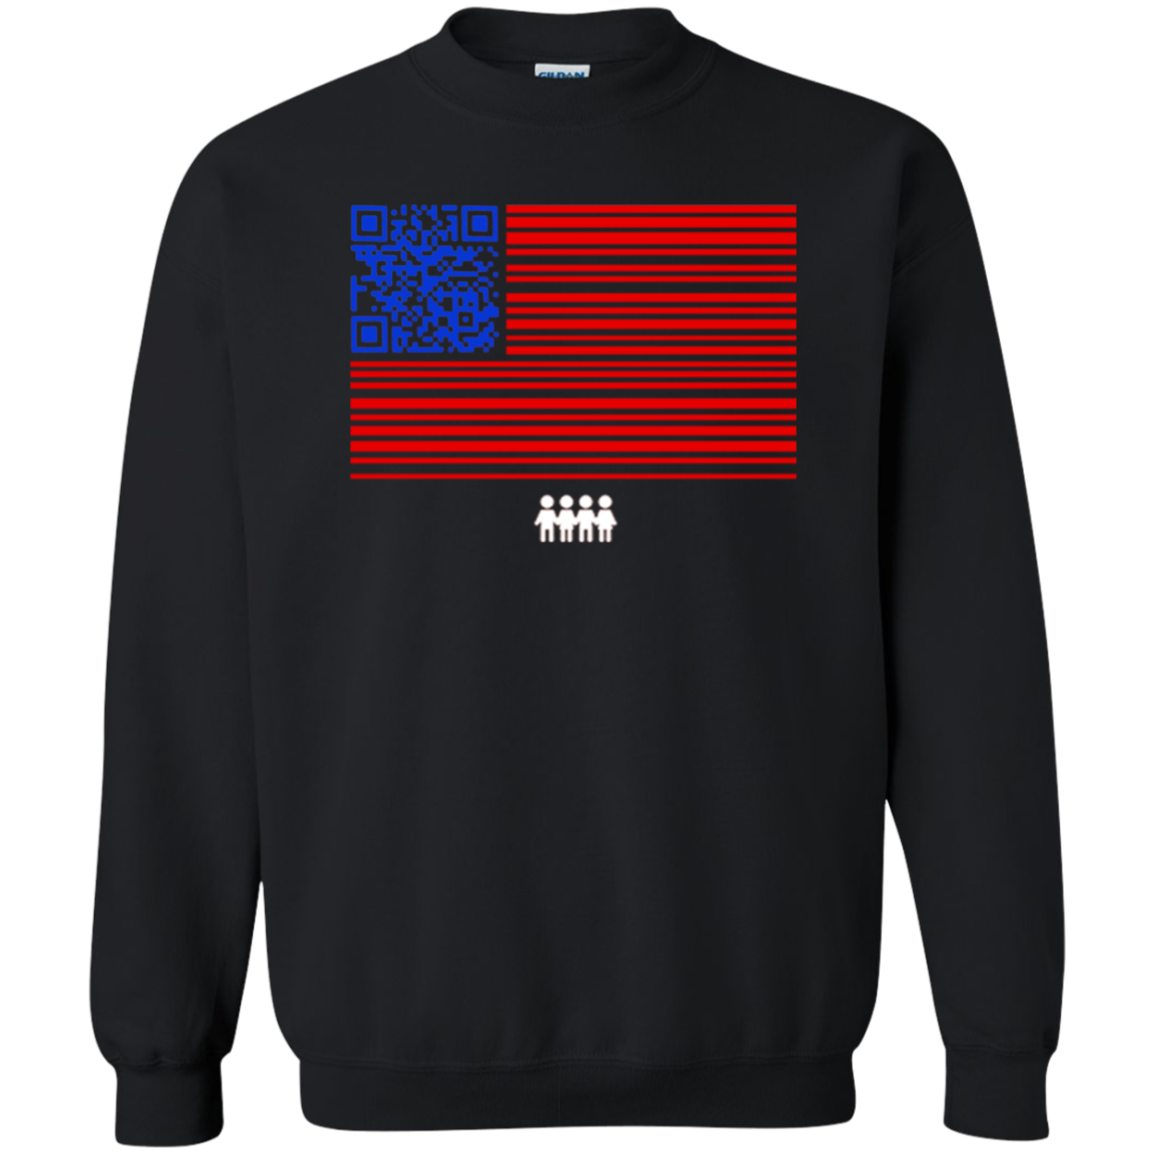 QR Codes To Register Voters Sweater Sweatshirt Turnout Tuesday Black